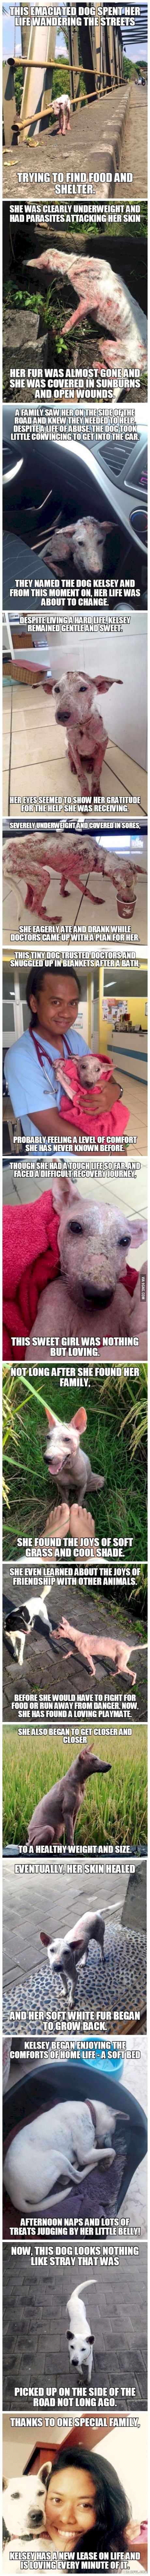 A story of a stray dog... -faith in humanity restored.